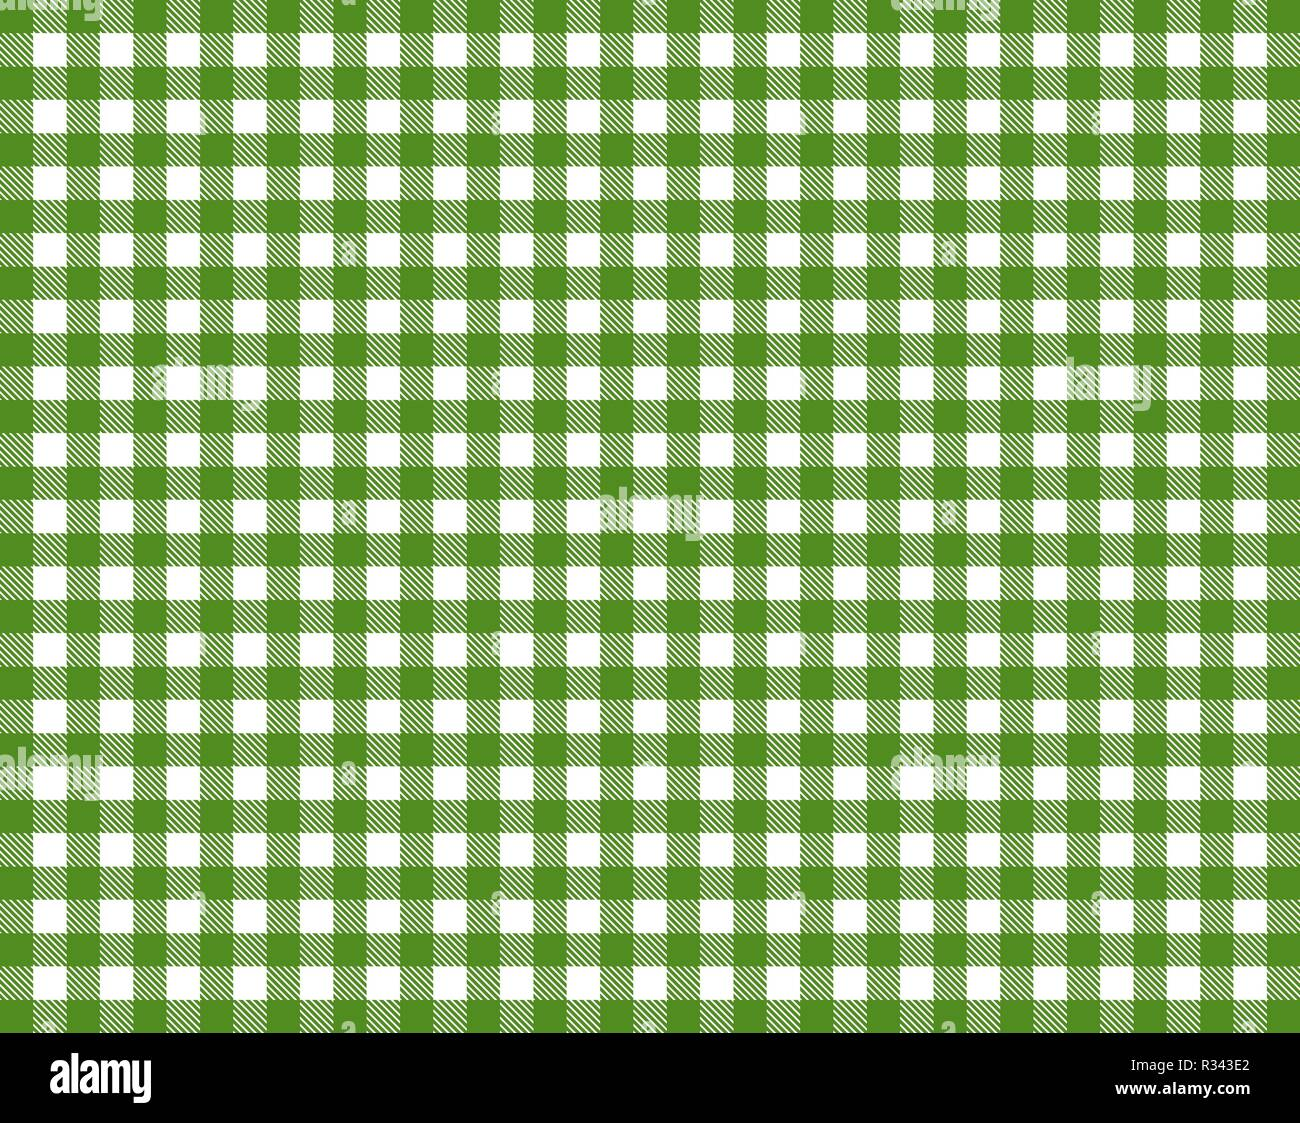 tablecloth with green-white checkered pattern Stock Photo - Alamy